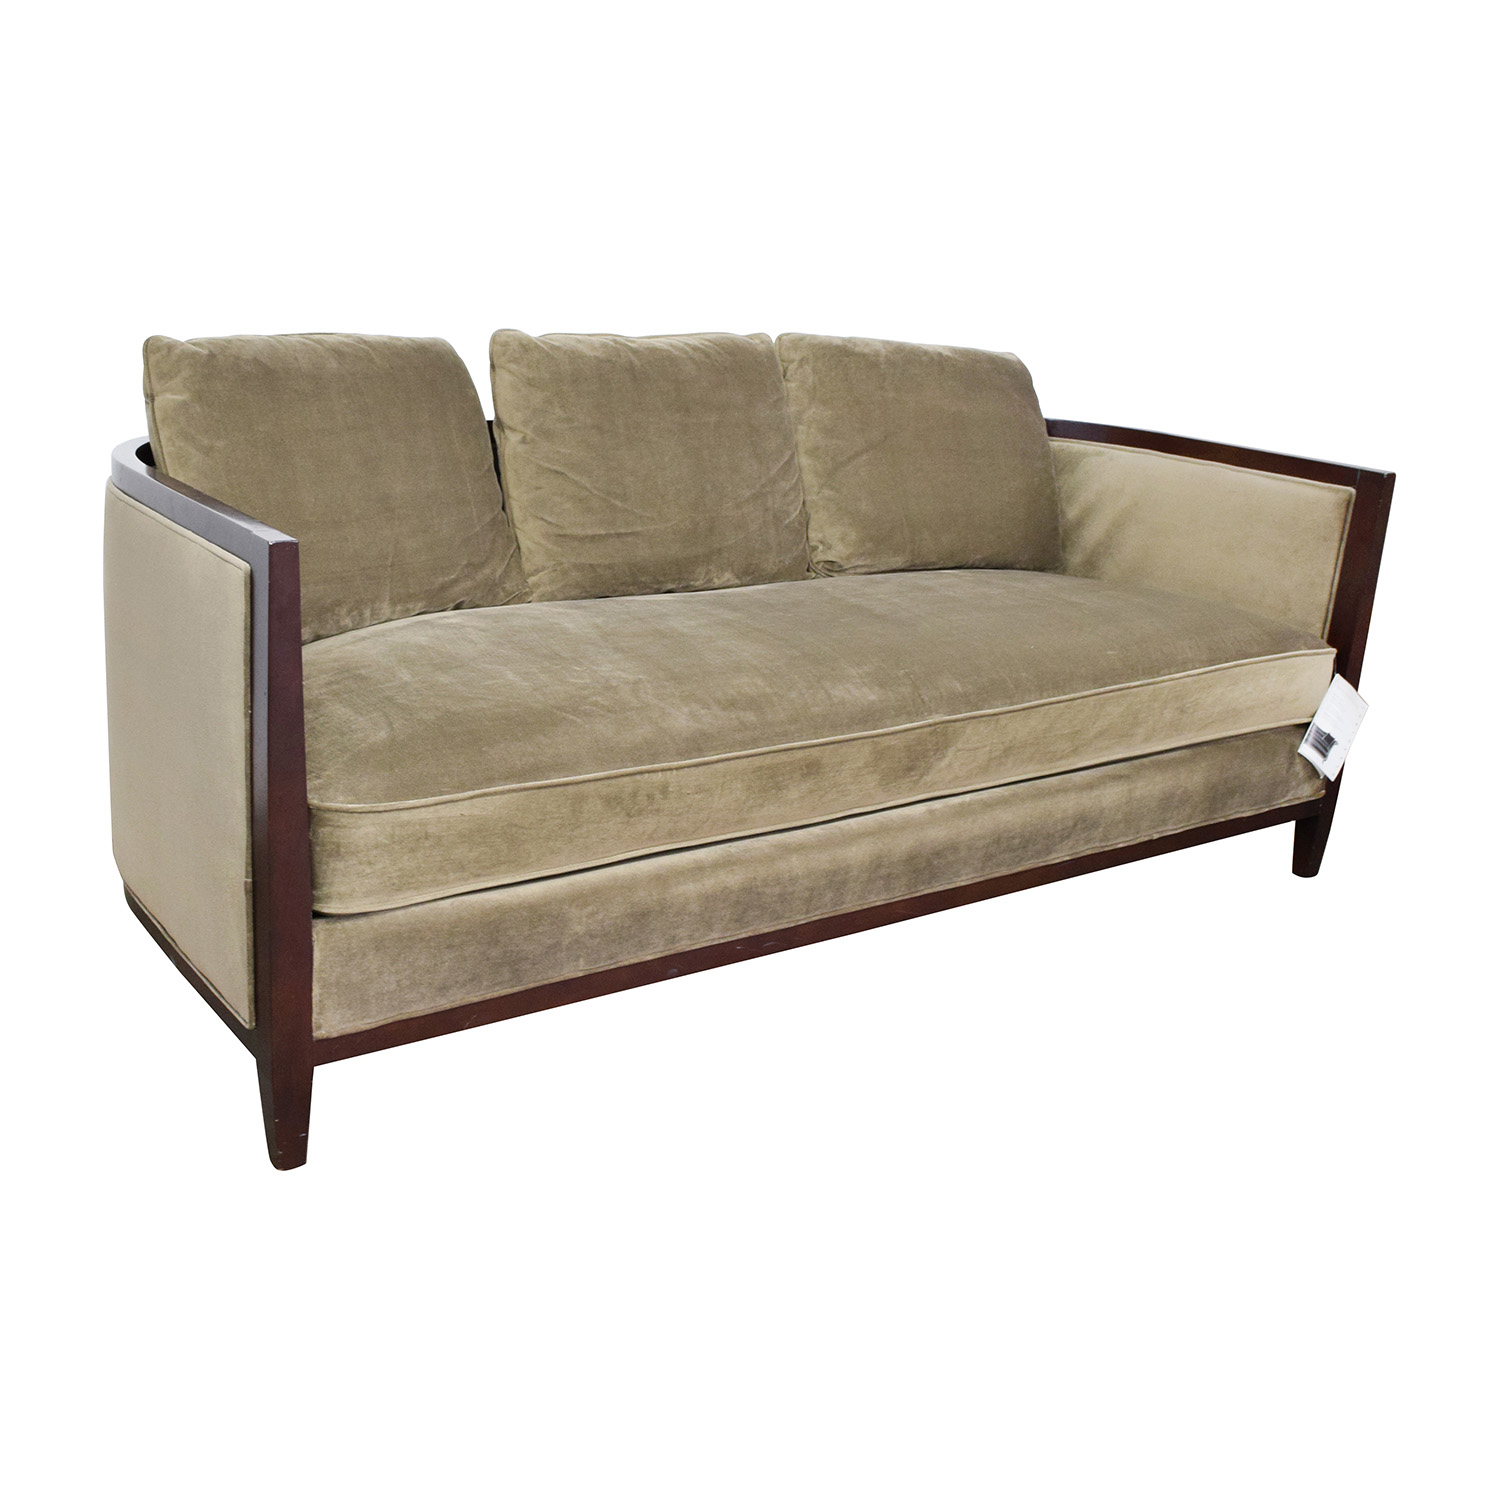 single cushion sofa pros and cons sofas sectionals montreal 85 off bernhardt tan